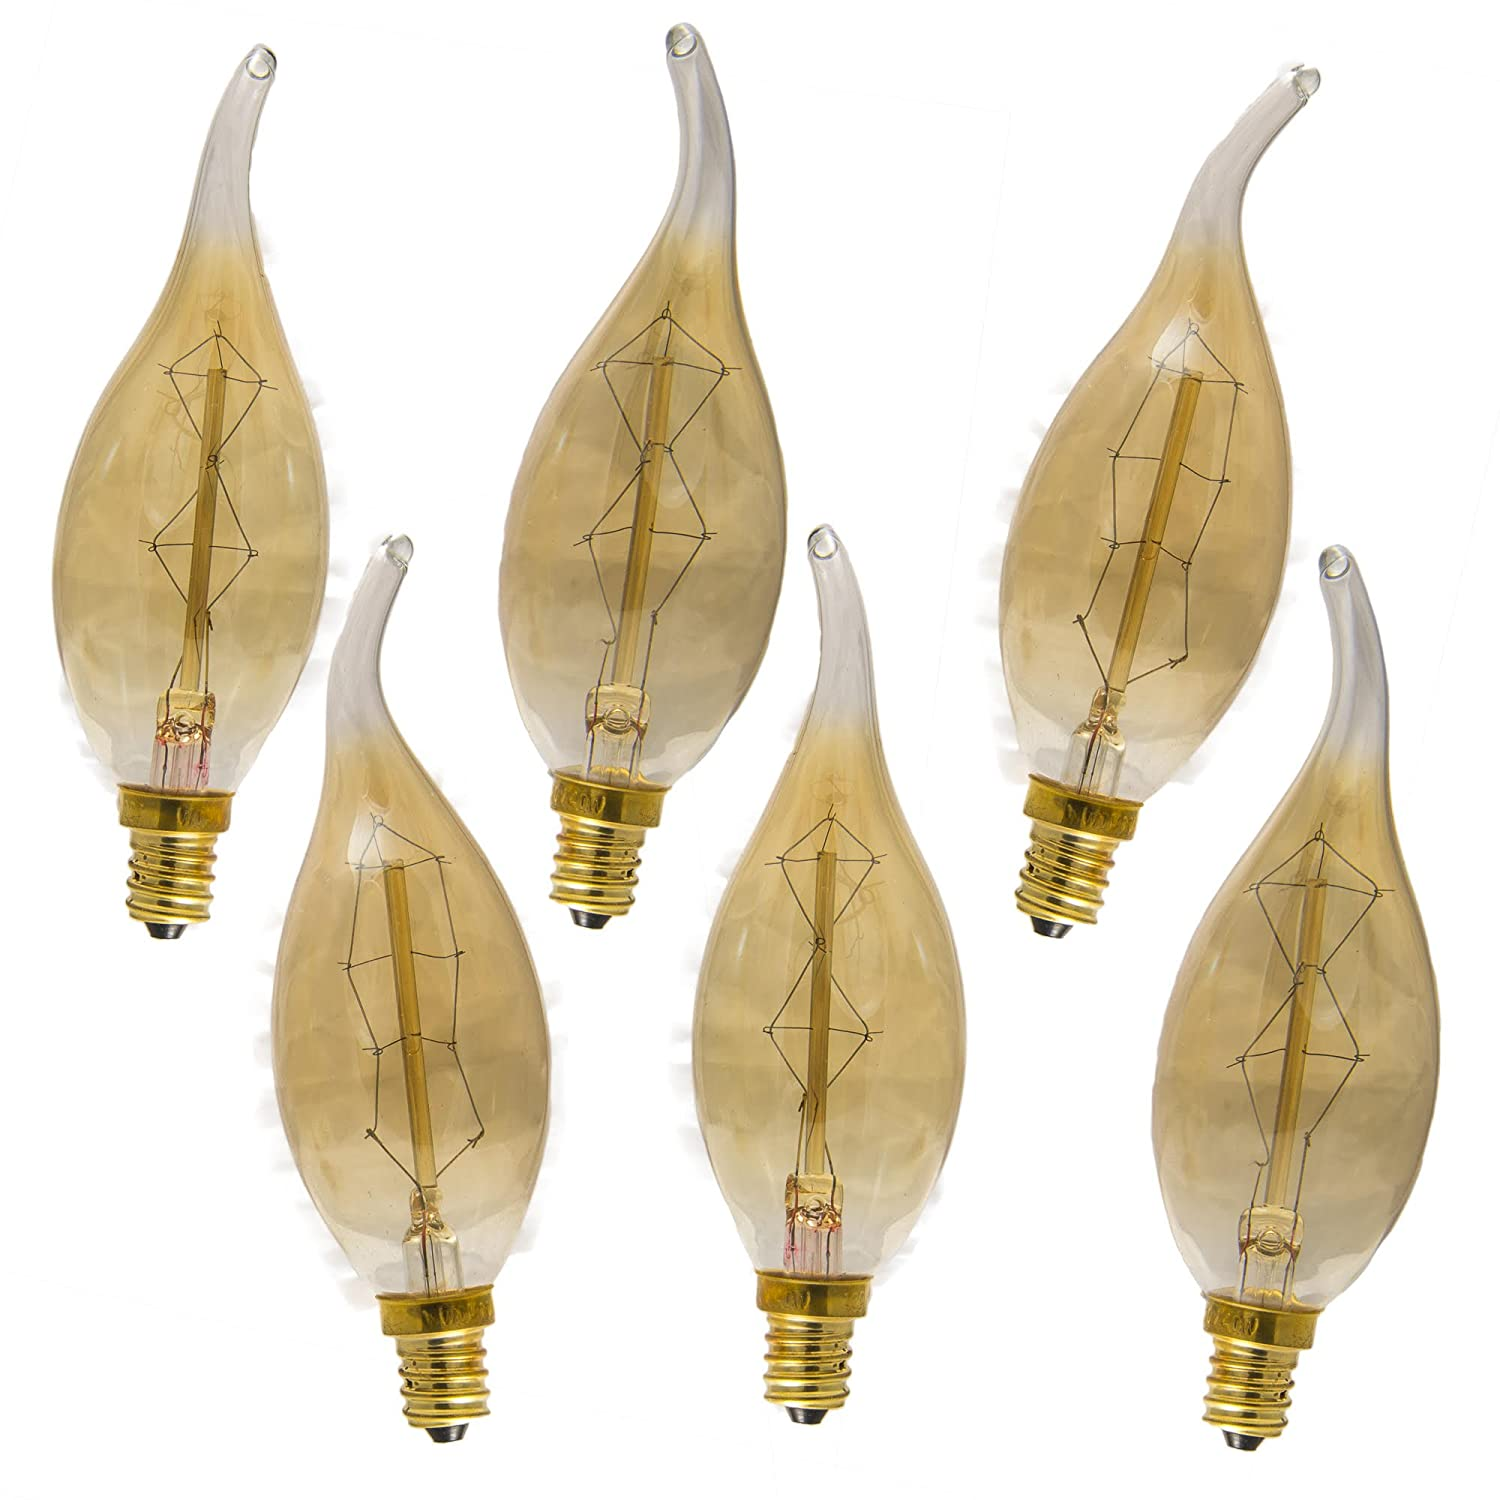 Enlightened ambience 40 watt antique edison style chandelier light enlightened ambience 40 watt antique edison style chandelier light bulb e 12 dimmable with flame tip set of 6 amazon arubaitofo Choice Image